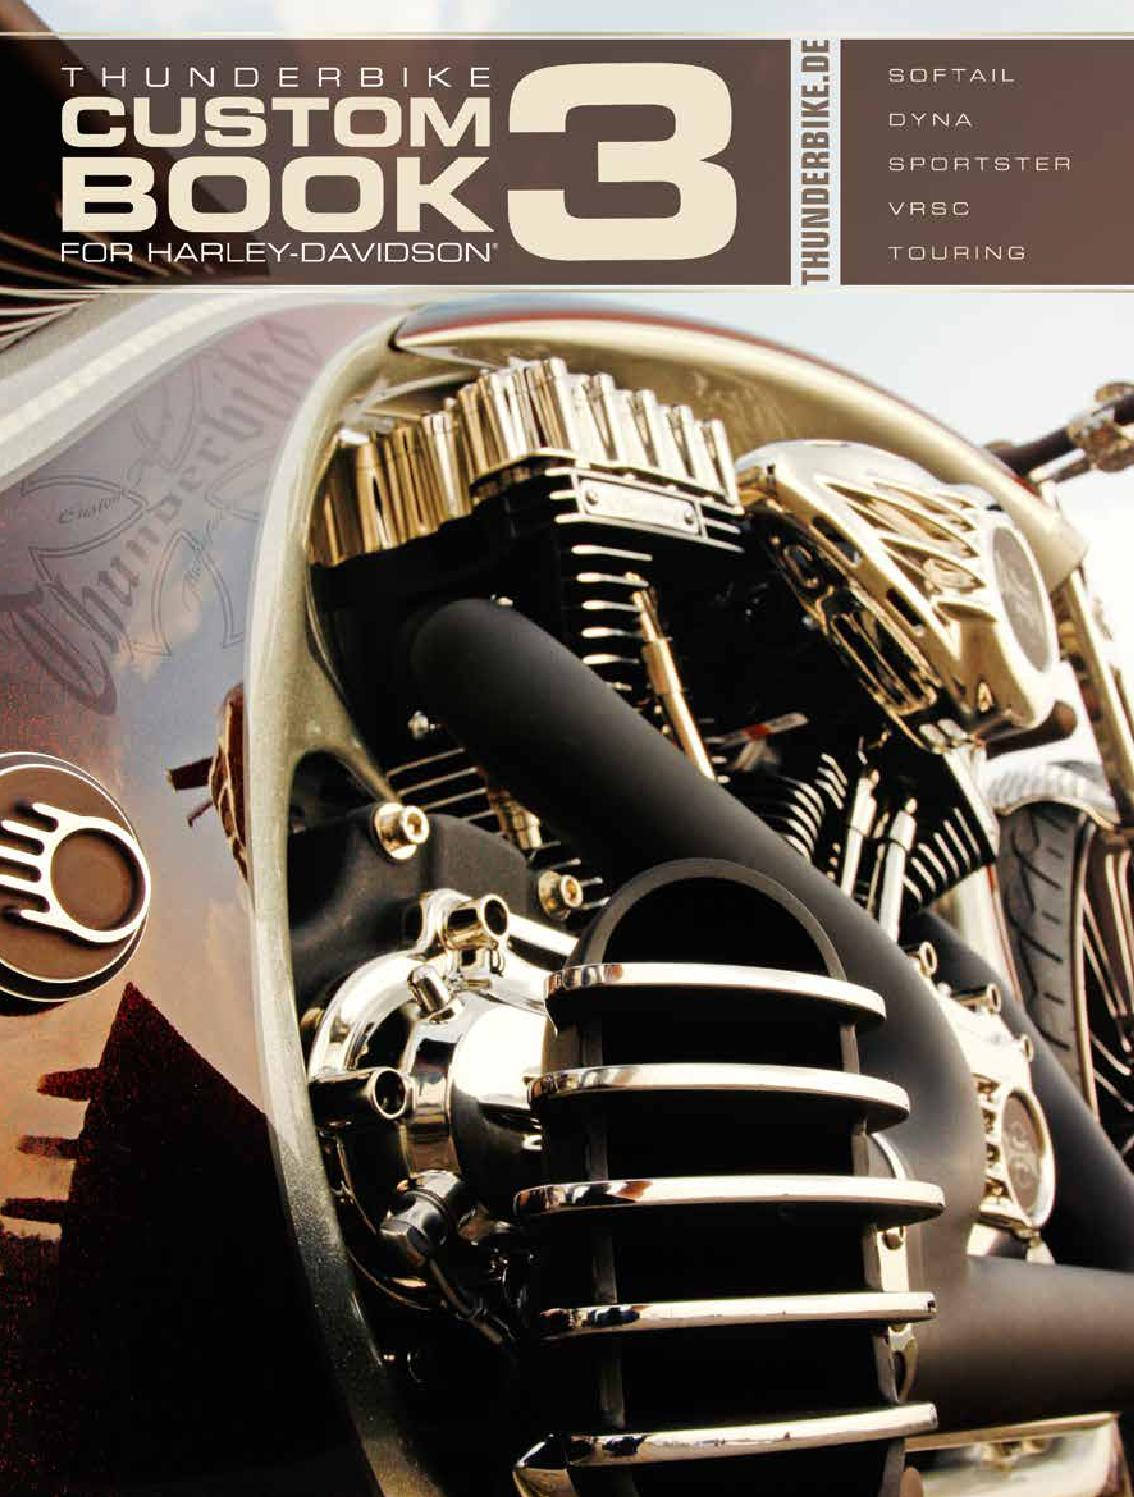 Apart Katalog Online Thunderbike Custombook 3 H D Parts By Juergen Heidelbach